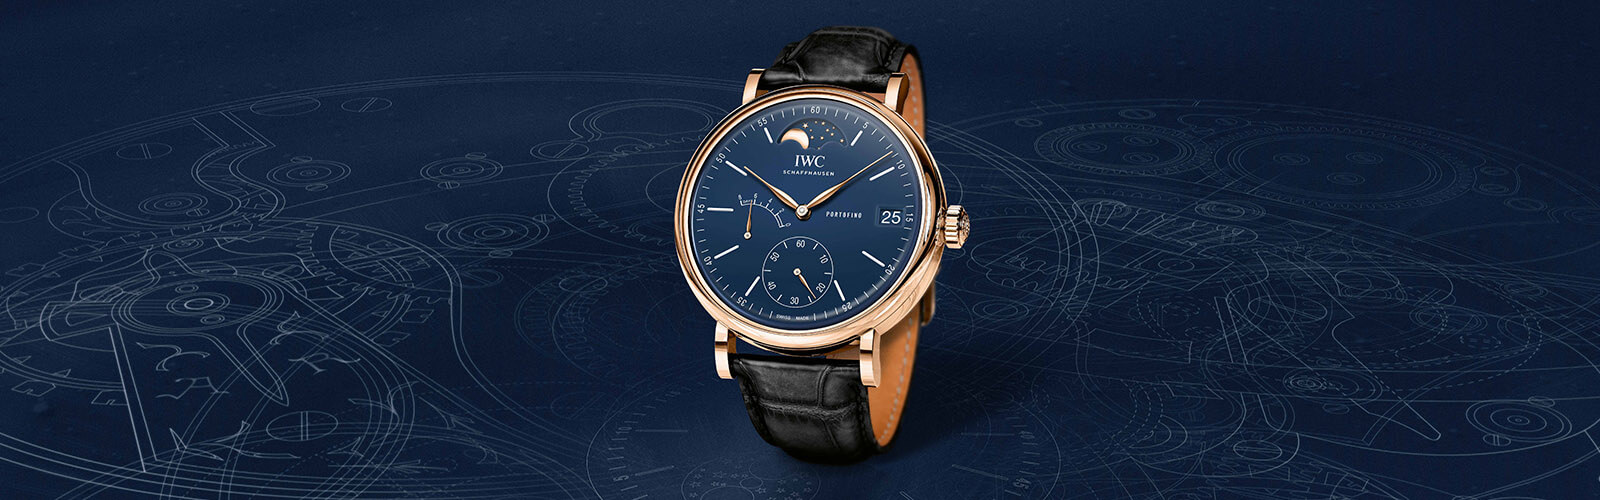 IWC SCHAFFHAUSEN Portofino Edition 150 YEARS_COVER1.1